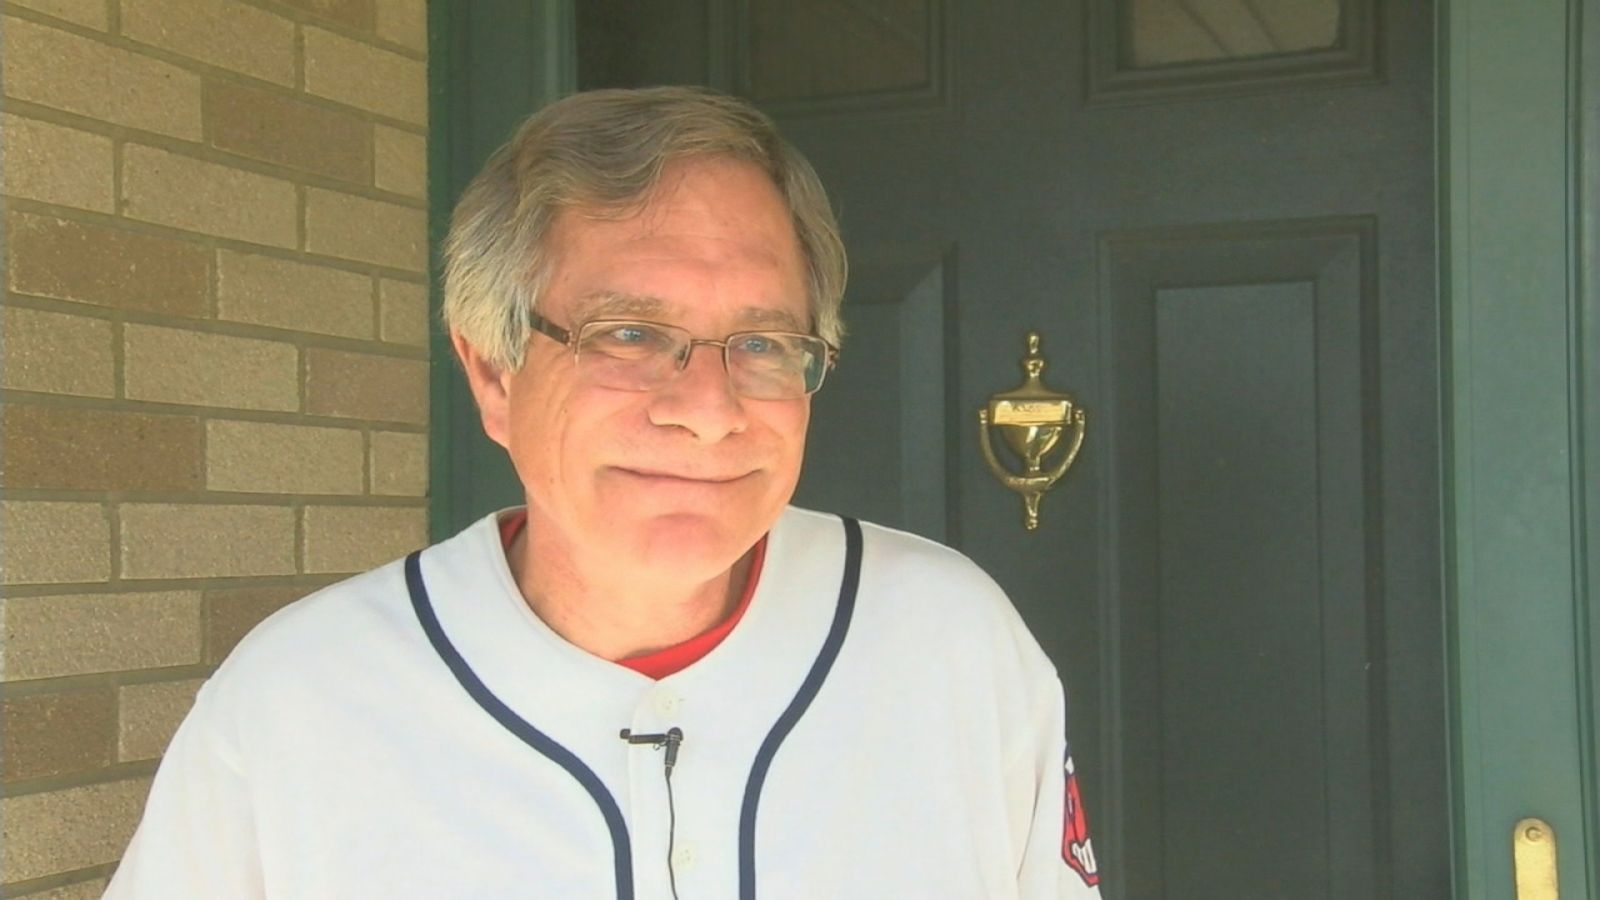 The former students of Struthers High School in Struthers, Ohio, rallied to have their teacher, Richard Gage, attend the World Series with his son Daniel, pictured here.